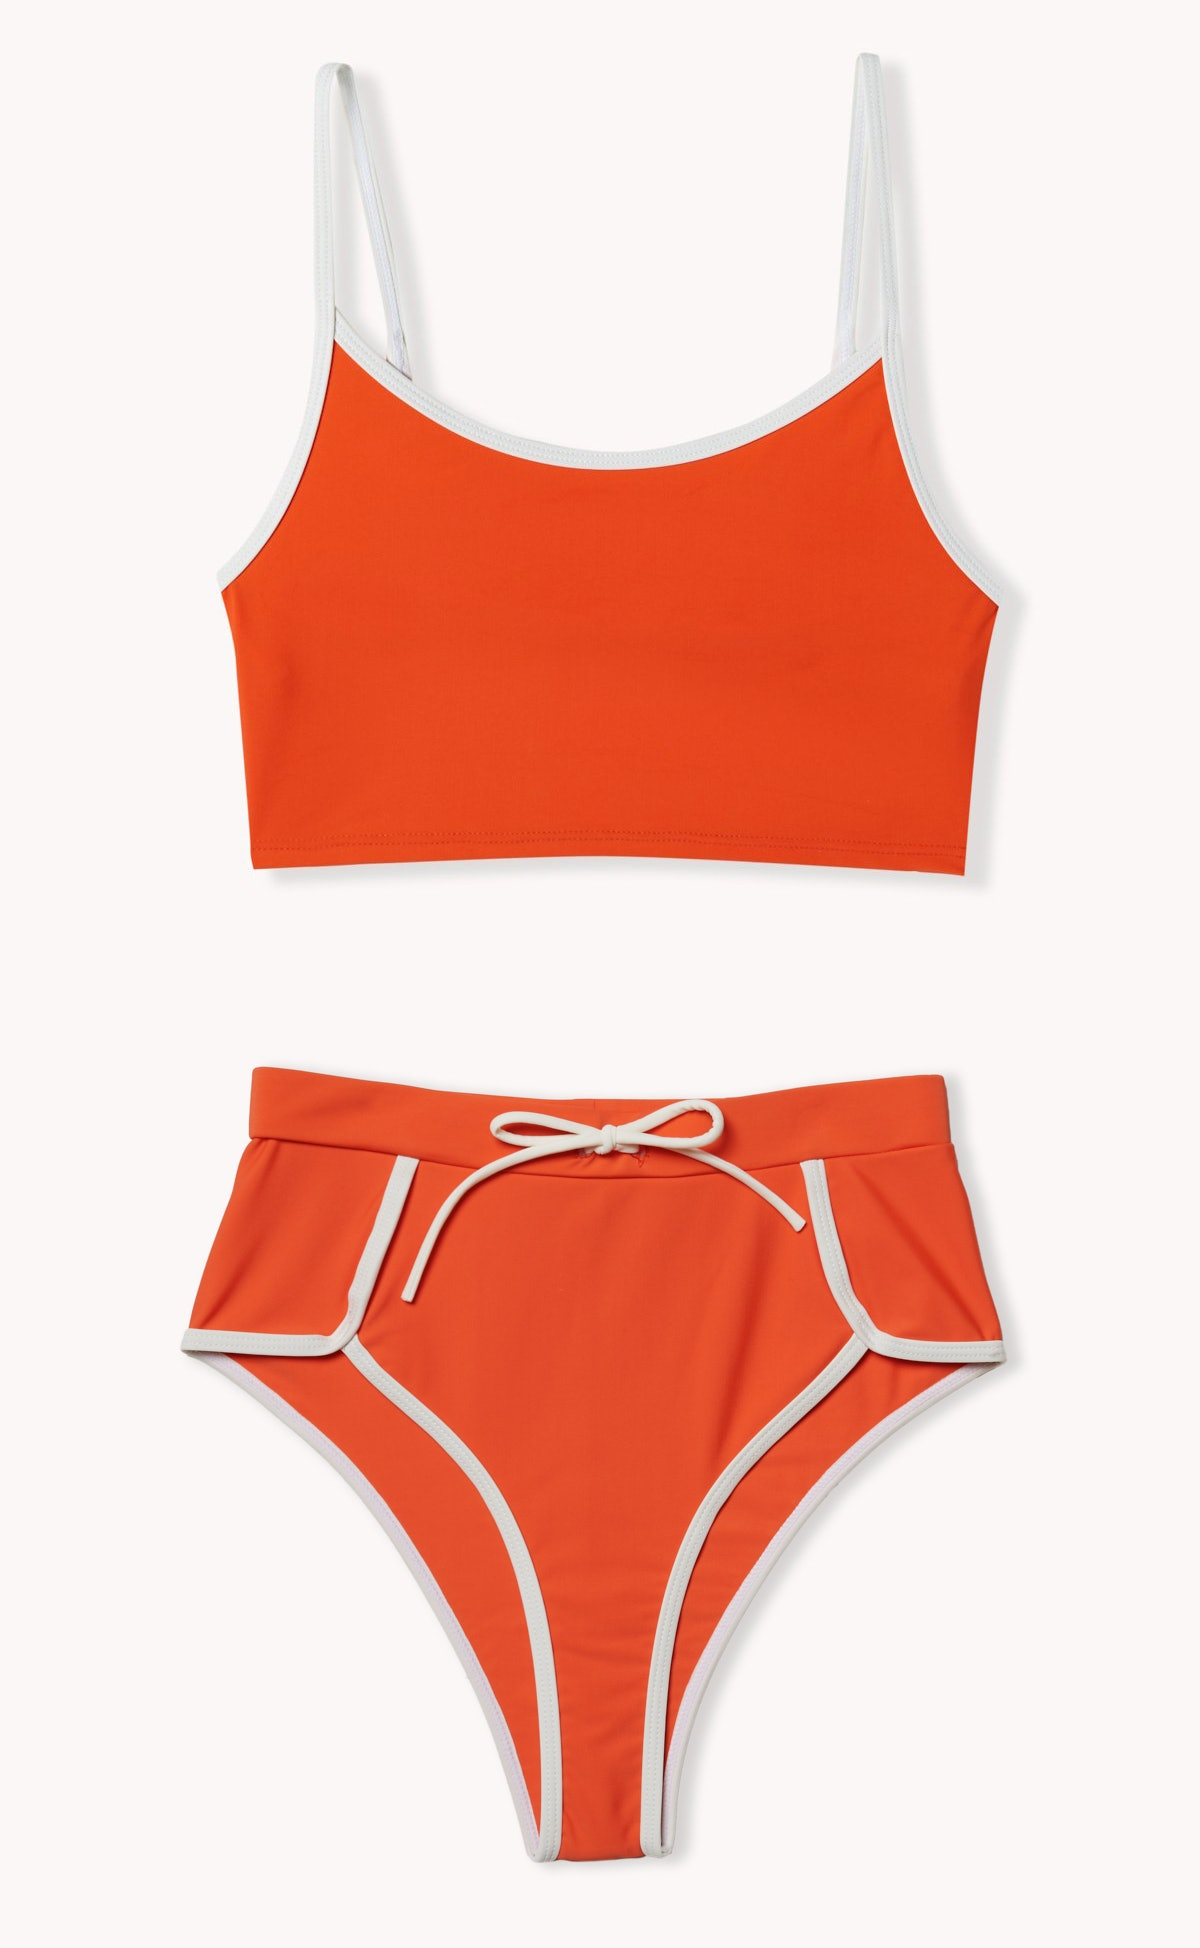 c1e552d2313 14 Cool New Swimwear Brands To Put On Your Radar For Summer